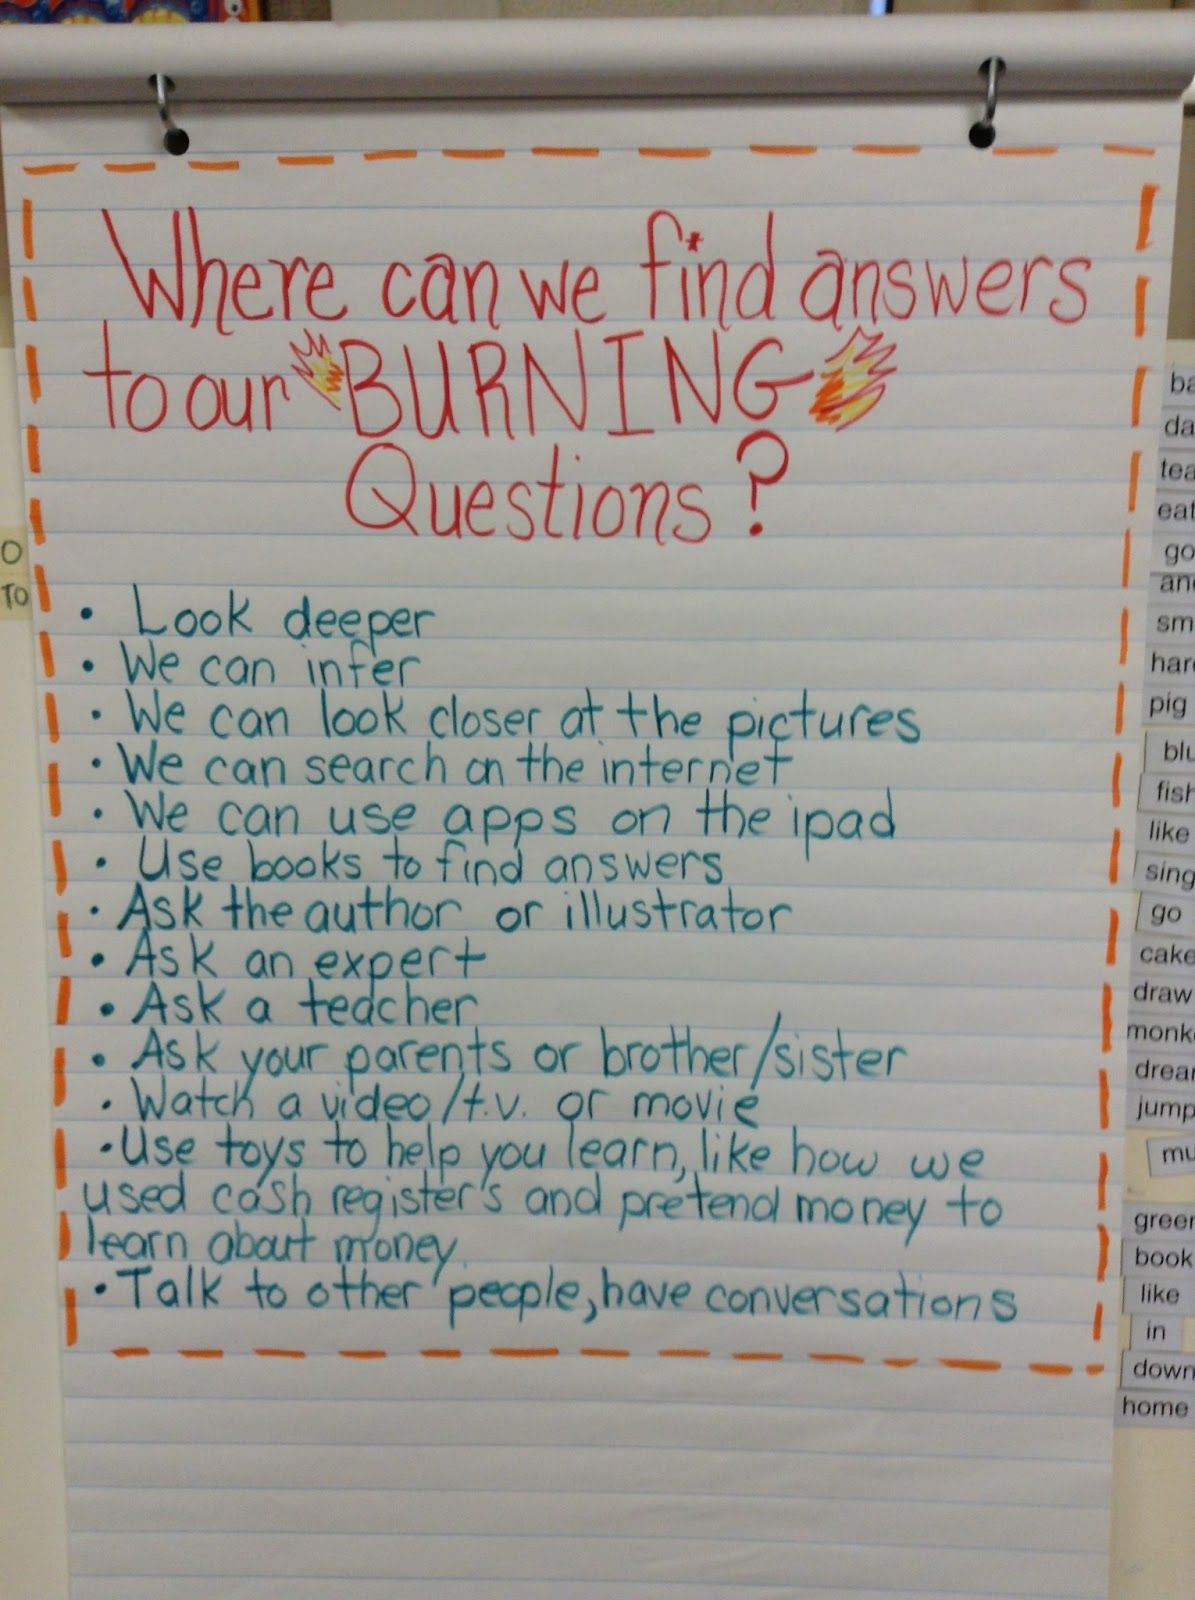 essay questions for third graders Milestone messenger volume 1, issue 1 9/3/2014 milestone ~noun ela  a stone by the side of a  sample 3rd grade social studies questions (selected response.